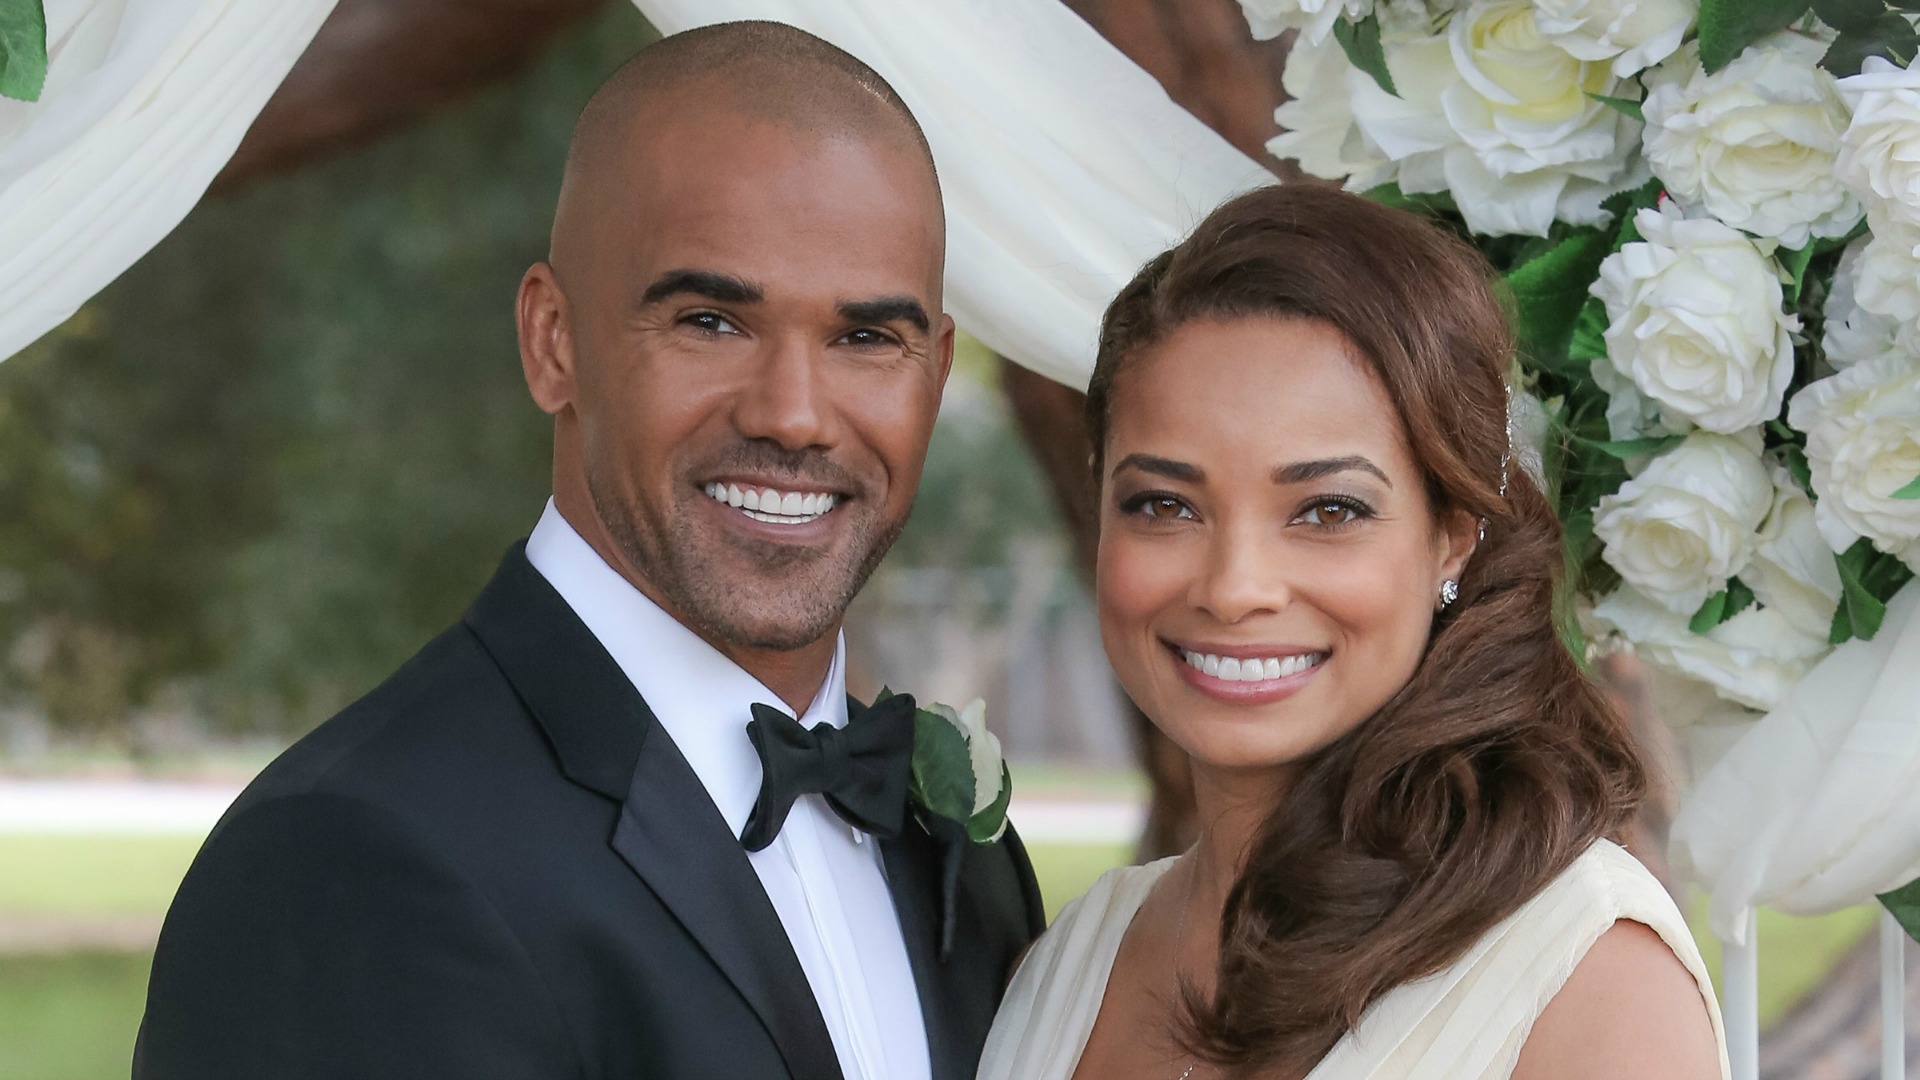 Derek Morgan asked Savannah to marry him.